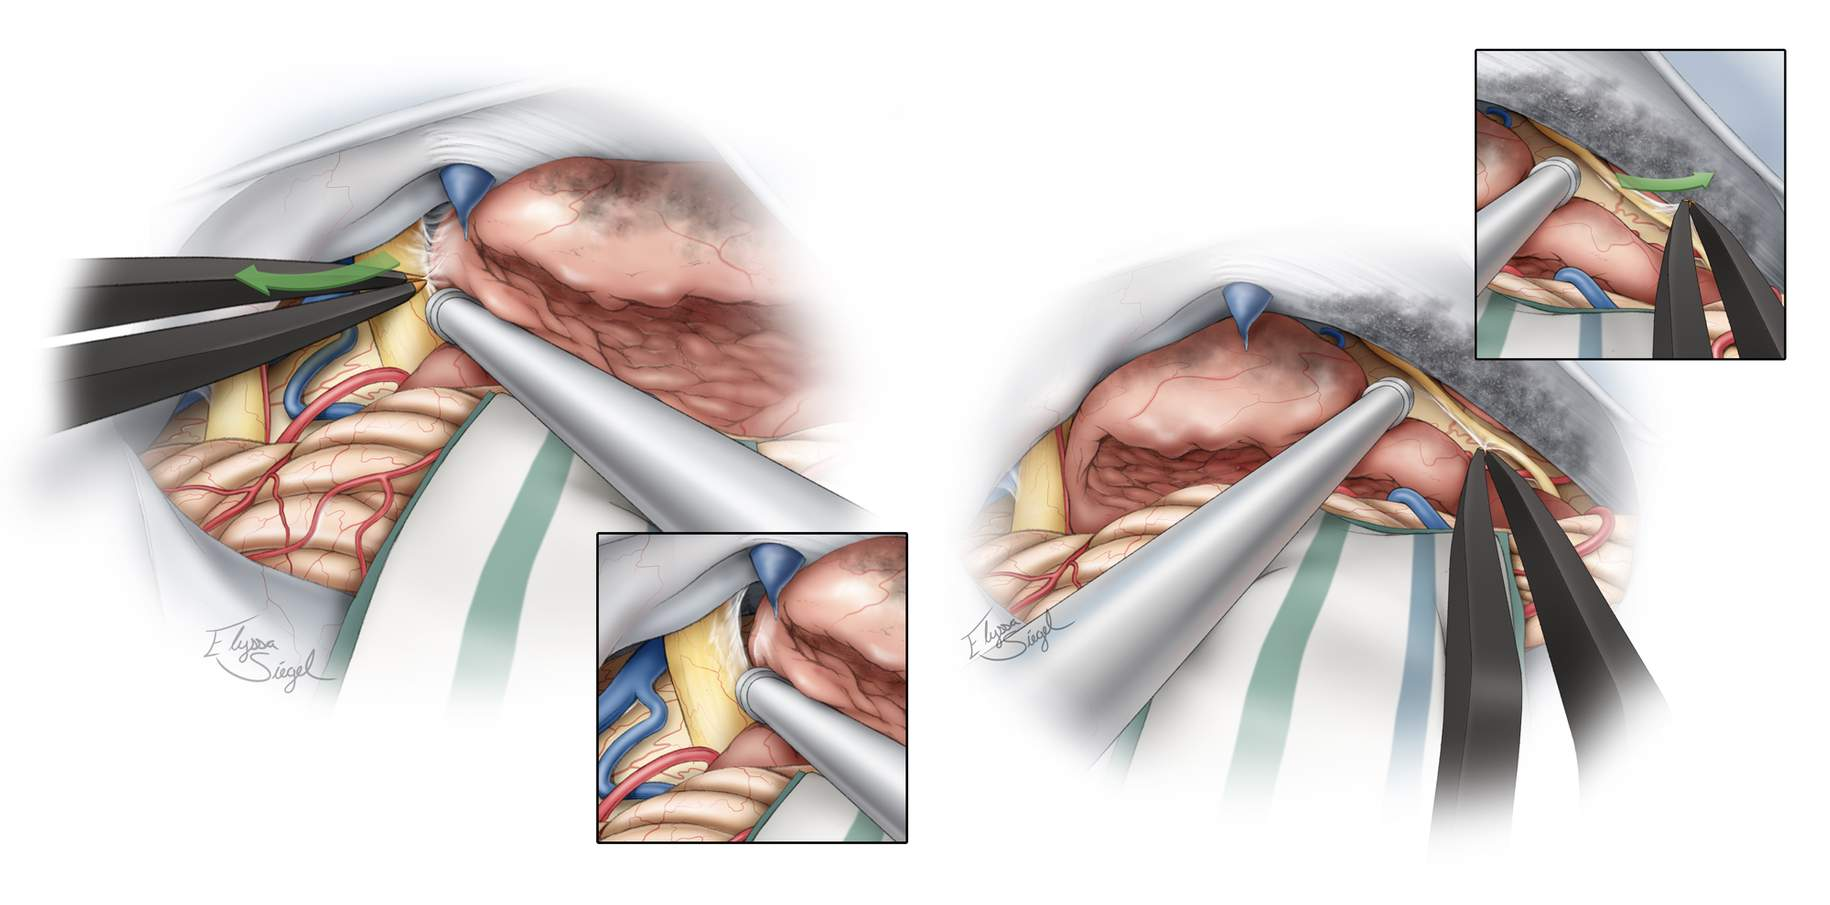 Figure 9: I use tumor forceps or the suction apparatus to mobilize the tumor capsule while fine forceps grab the arachnoid membranes to gently peel them away from the tumor while preventing direct contact with sensitive nerves (left image: left cranial nerve V; right image: left cranial nerve IV).